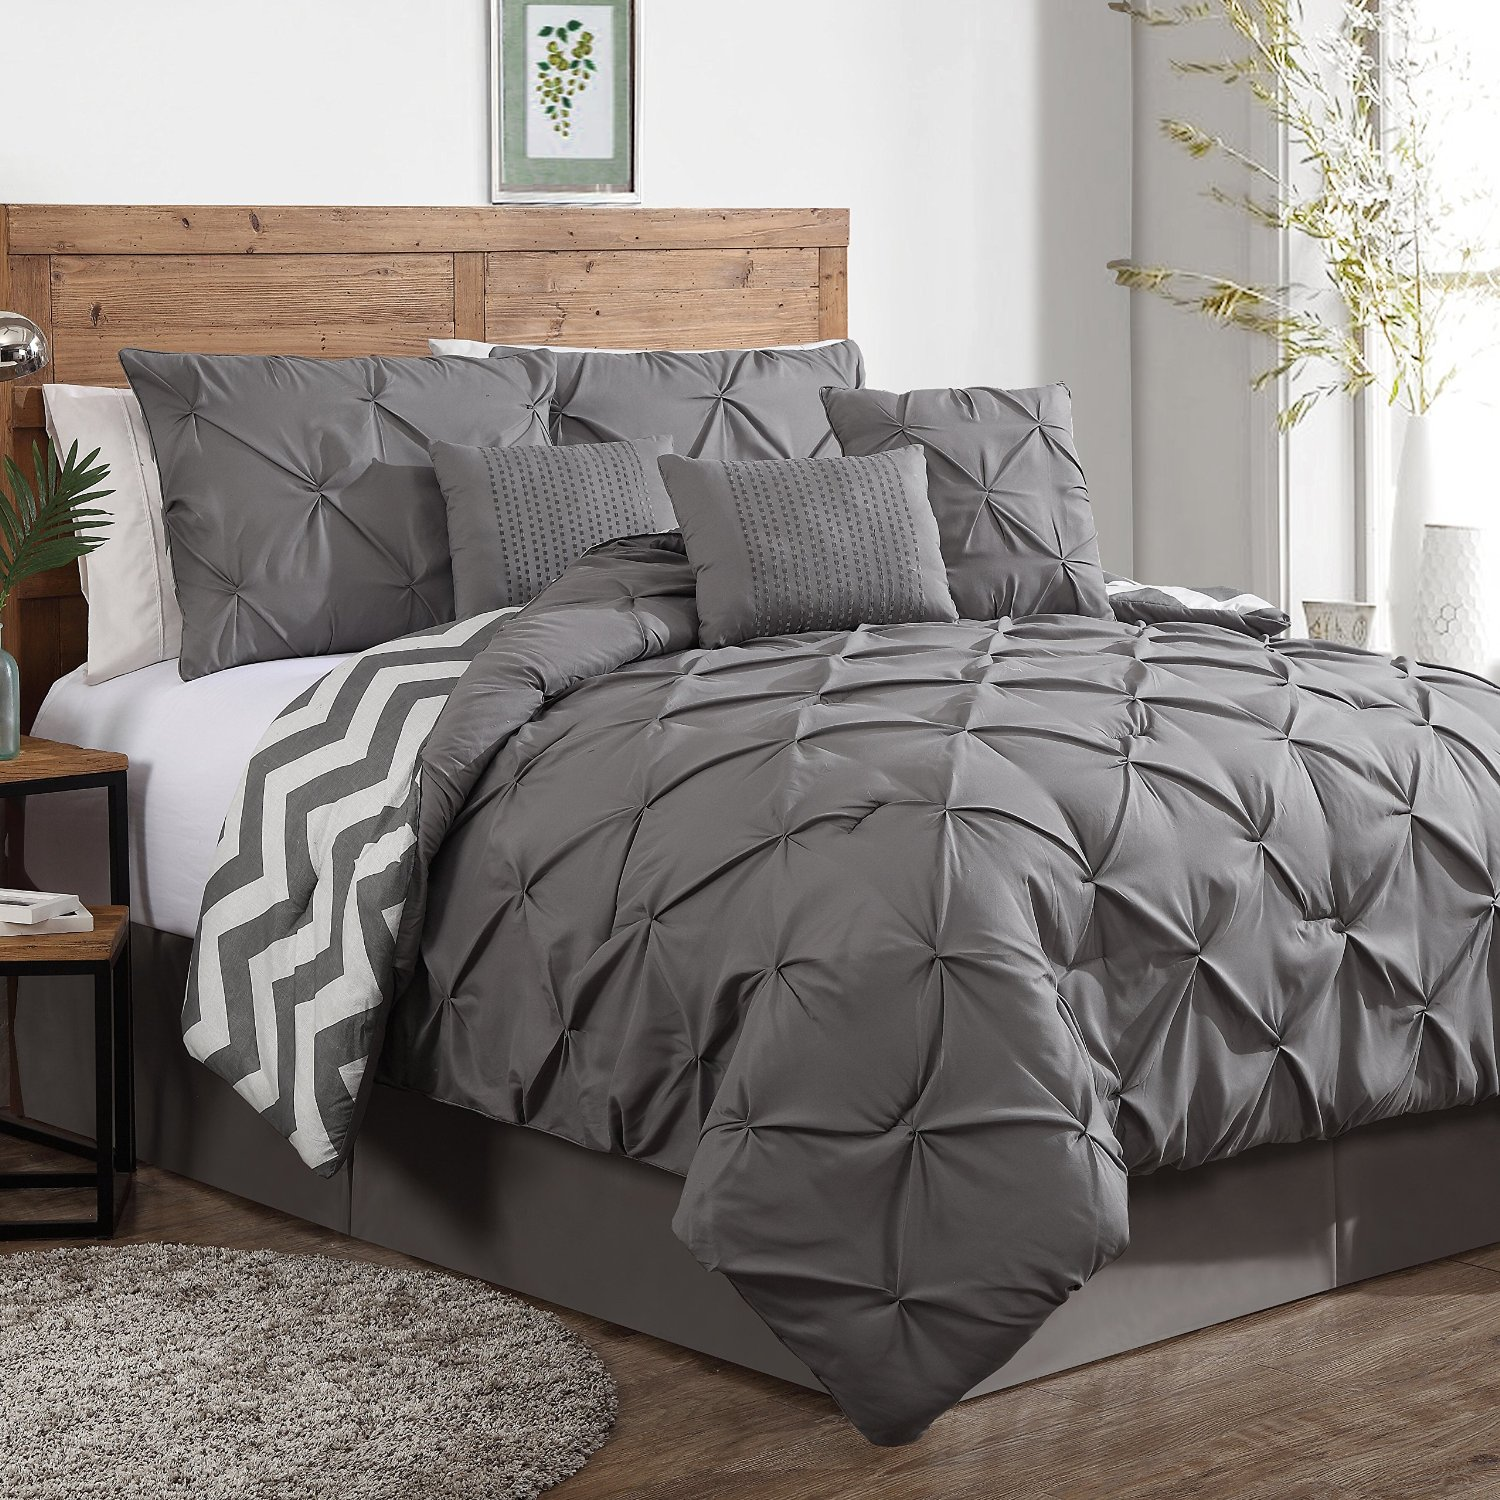 Bed sets for men - Grey White Comforter Sets For Men With Round Rug